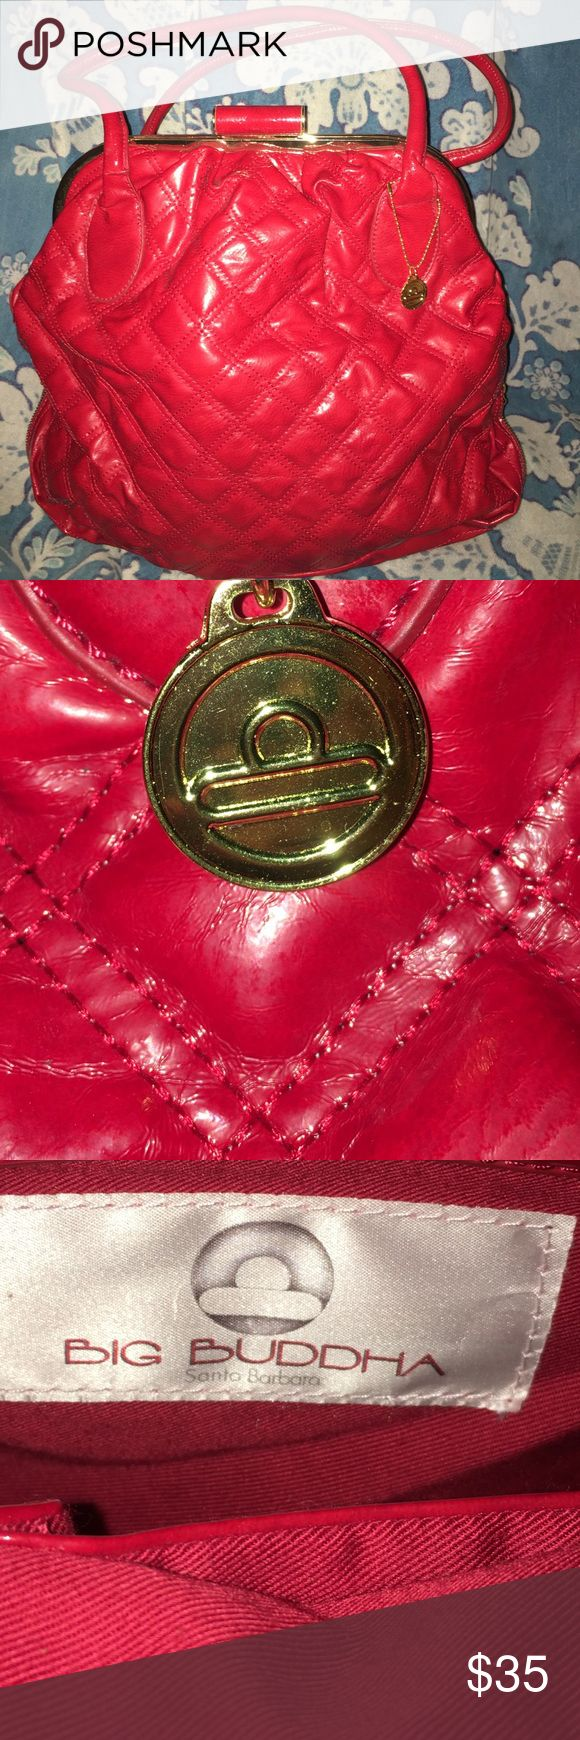 NWOT Big Buddha Red Patented Oversized Bag From the gym to a date this NWOT Big Buddha Red Patent Leather Oversized  Quilted Bag is Fun & Sexy!  Clean, Inside Pocket with gold charm. Zipper on bottom helps to expand the bag for more storage. Measurements to follow.. Big Buddha Bags Travel Bags